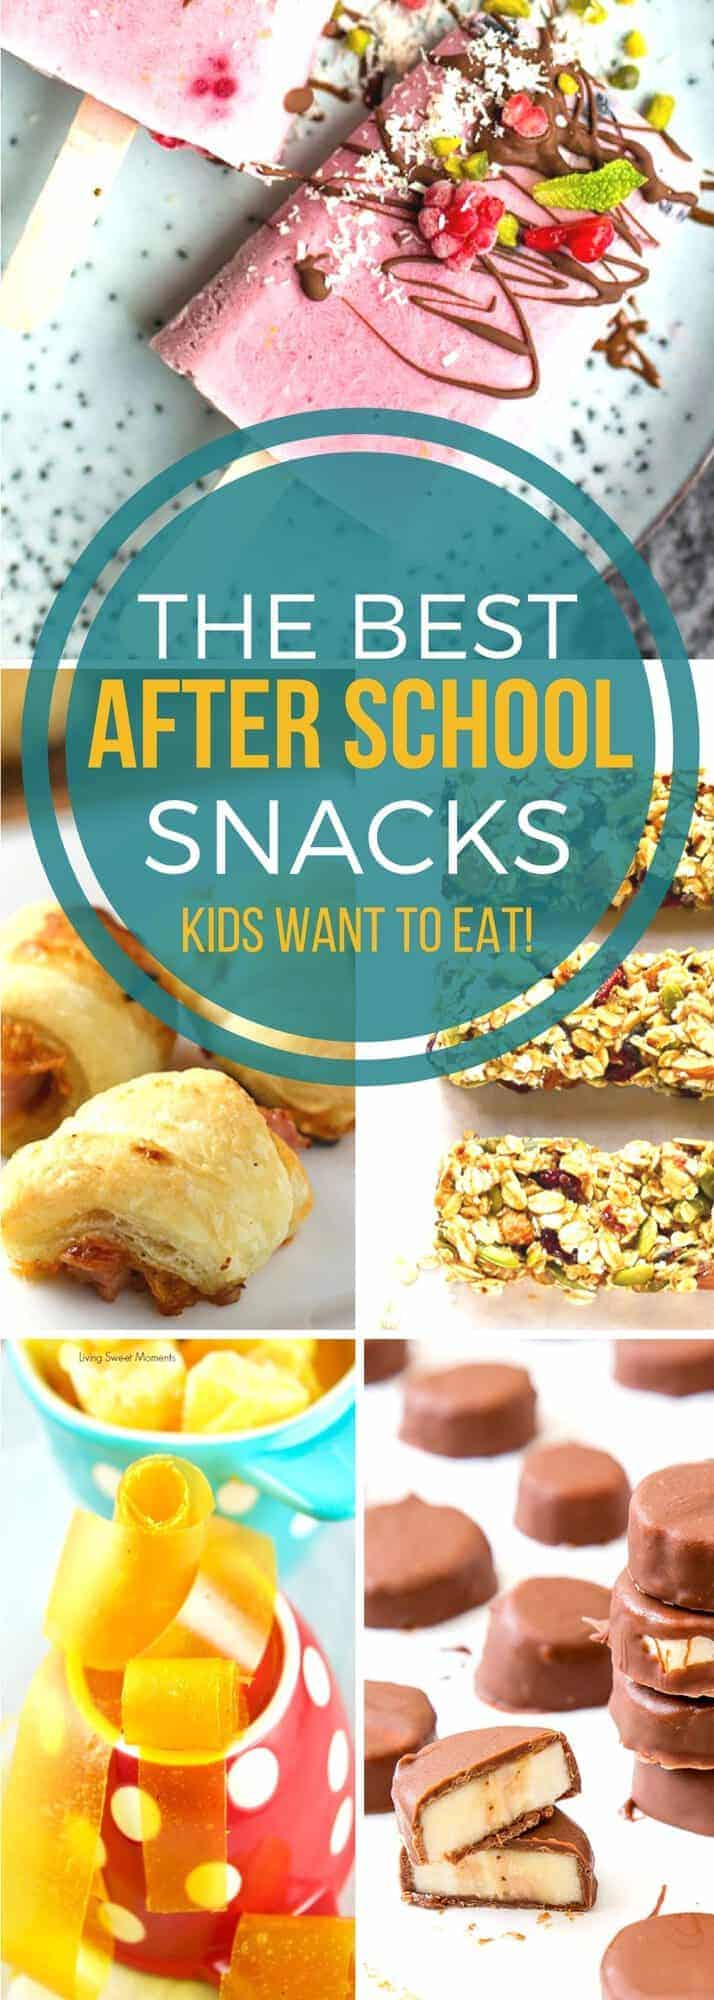 When the kids go back to school be ready with all the recipes you need for after school snack time! Our list of the best after school snacks will keep even the pickiest eaters satisfied!#SundaySupper